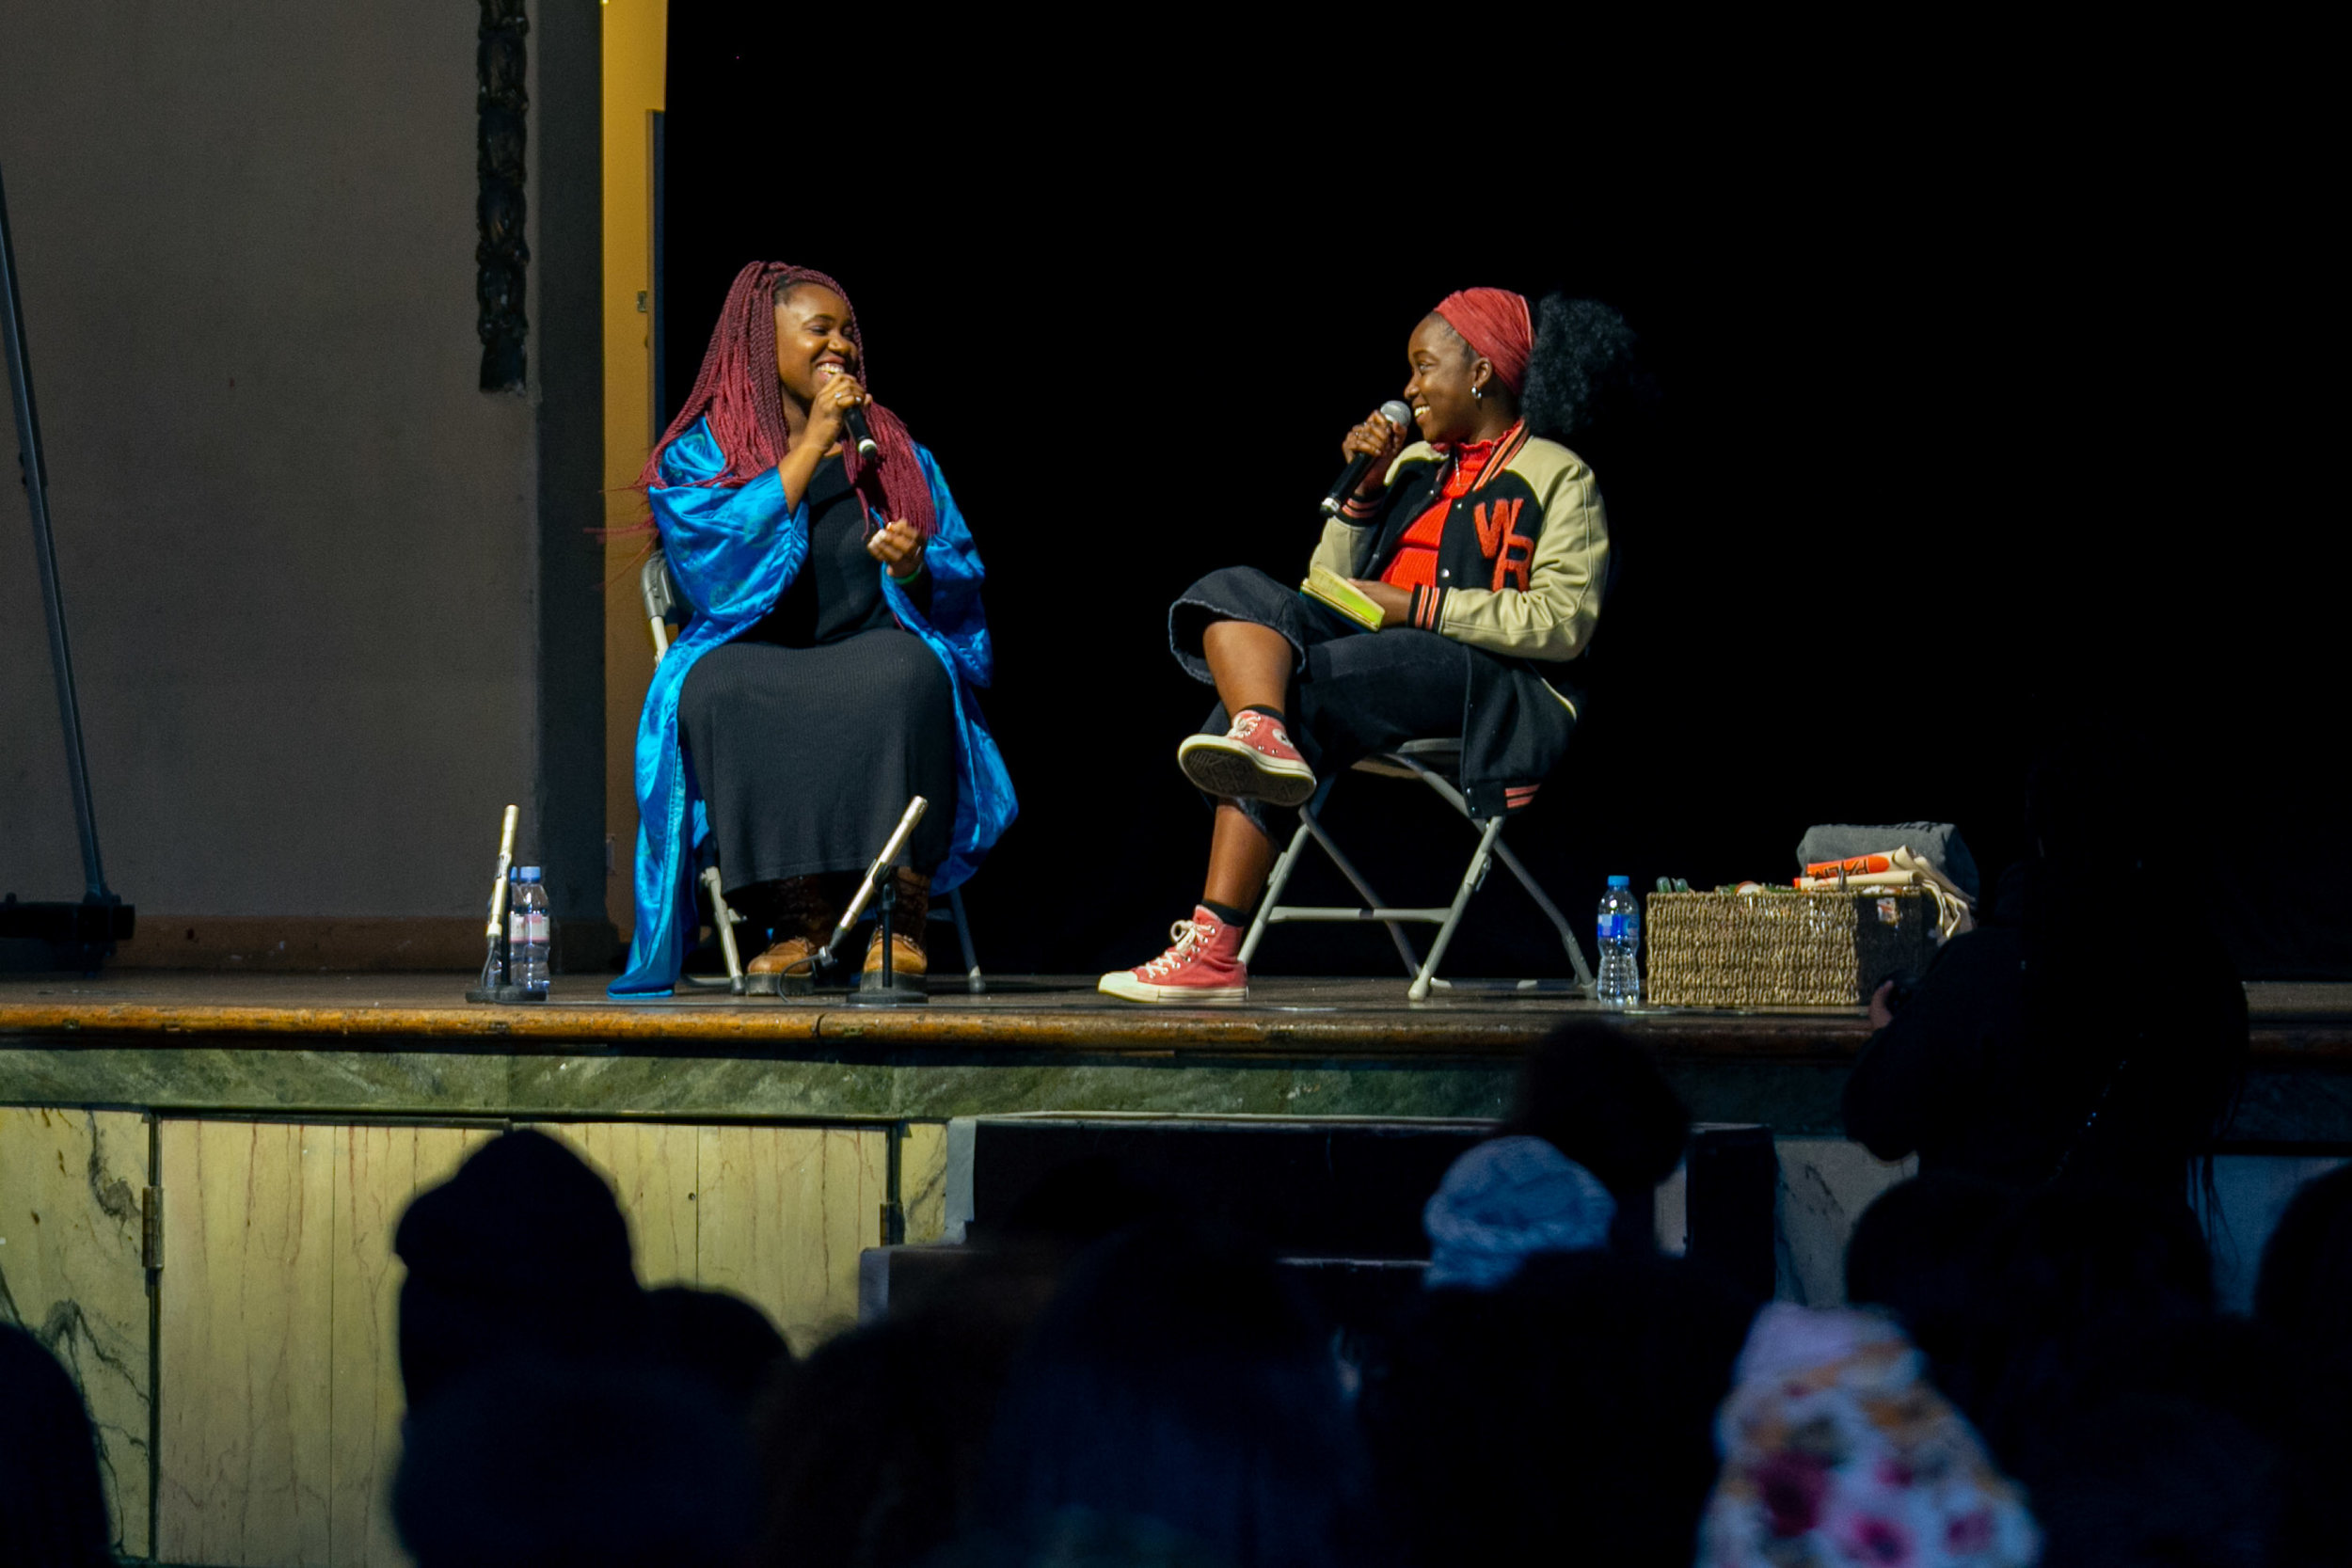 Talks - Discussions ranged from women in media, the politics of Black hair and beauty, literature + more.